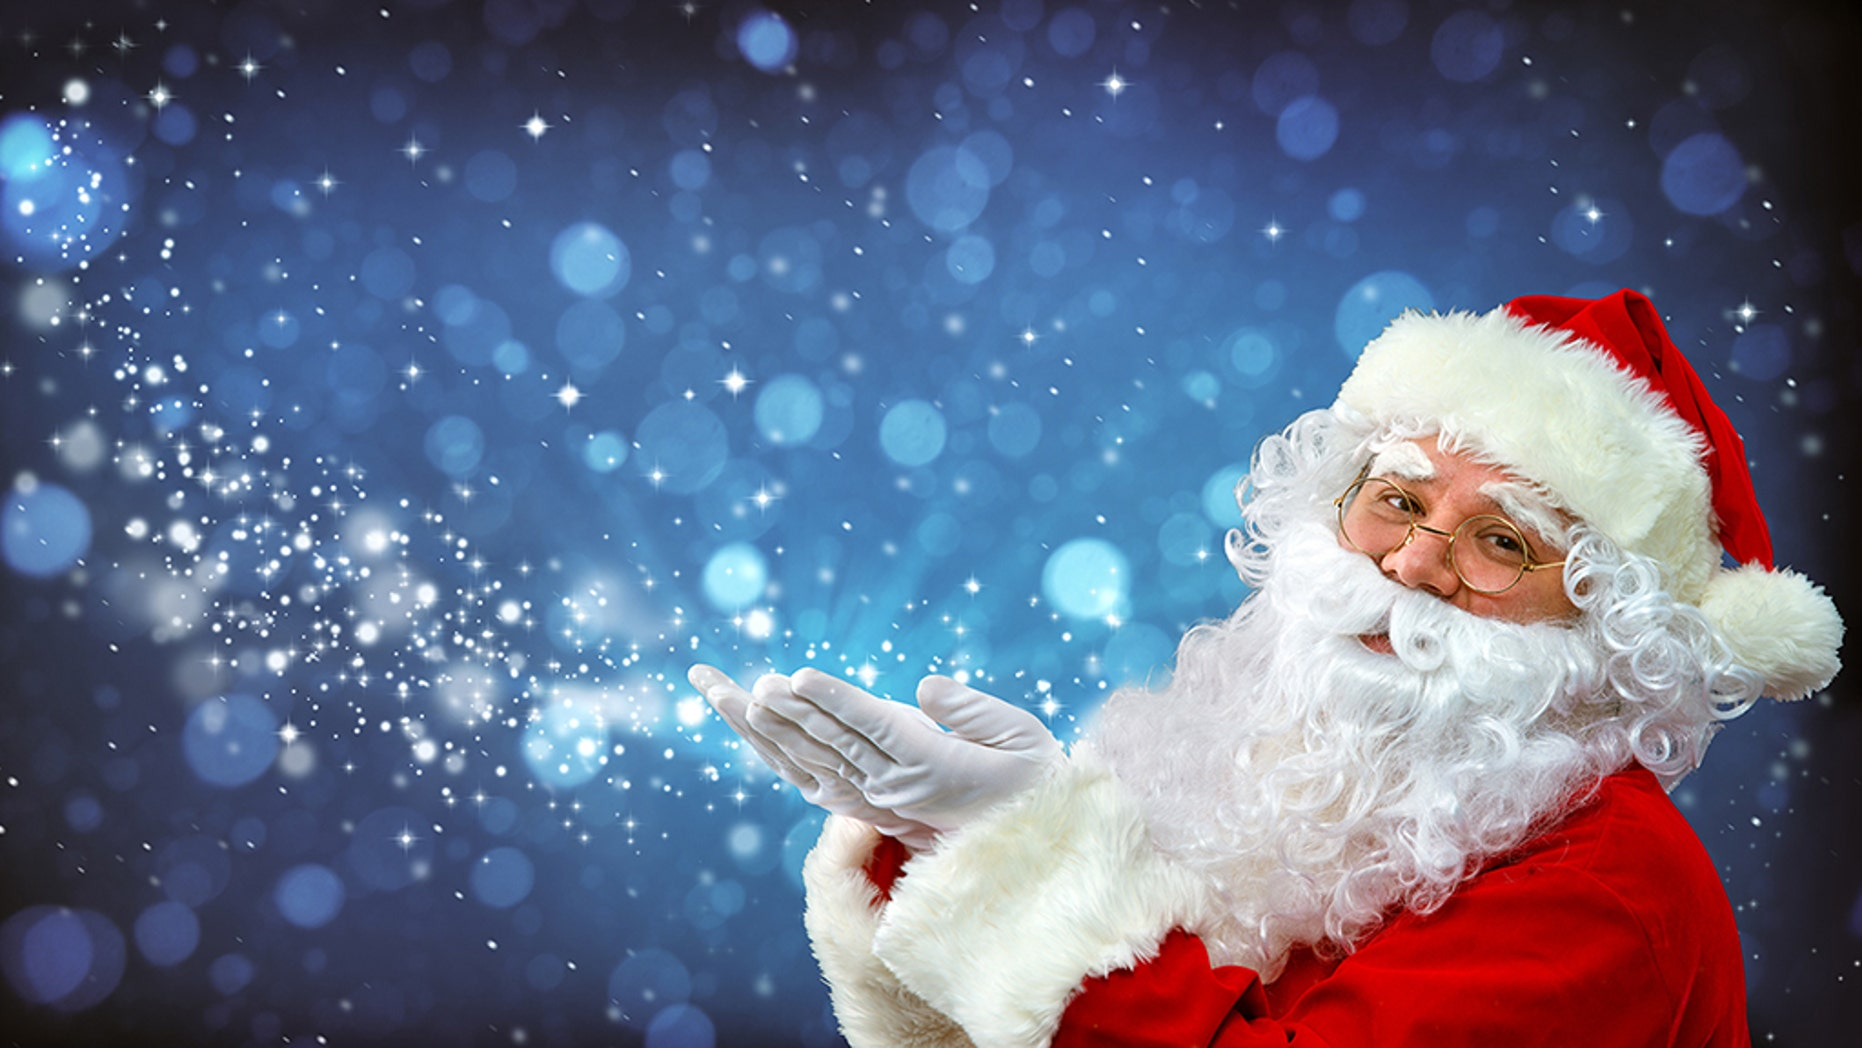 A substitute teacher in New Jersey is said to have delivered some devastating news to First Years students on Thursday: What they think they know about St. Nick is wrong, and Santa Claus is not real.